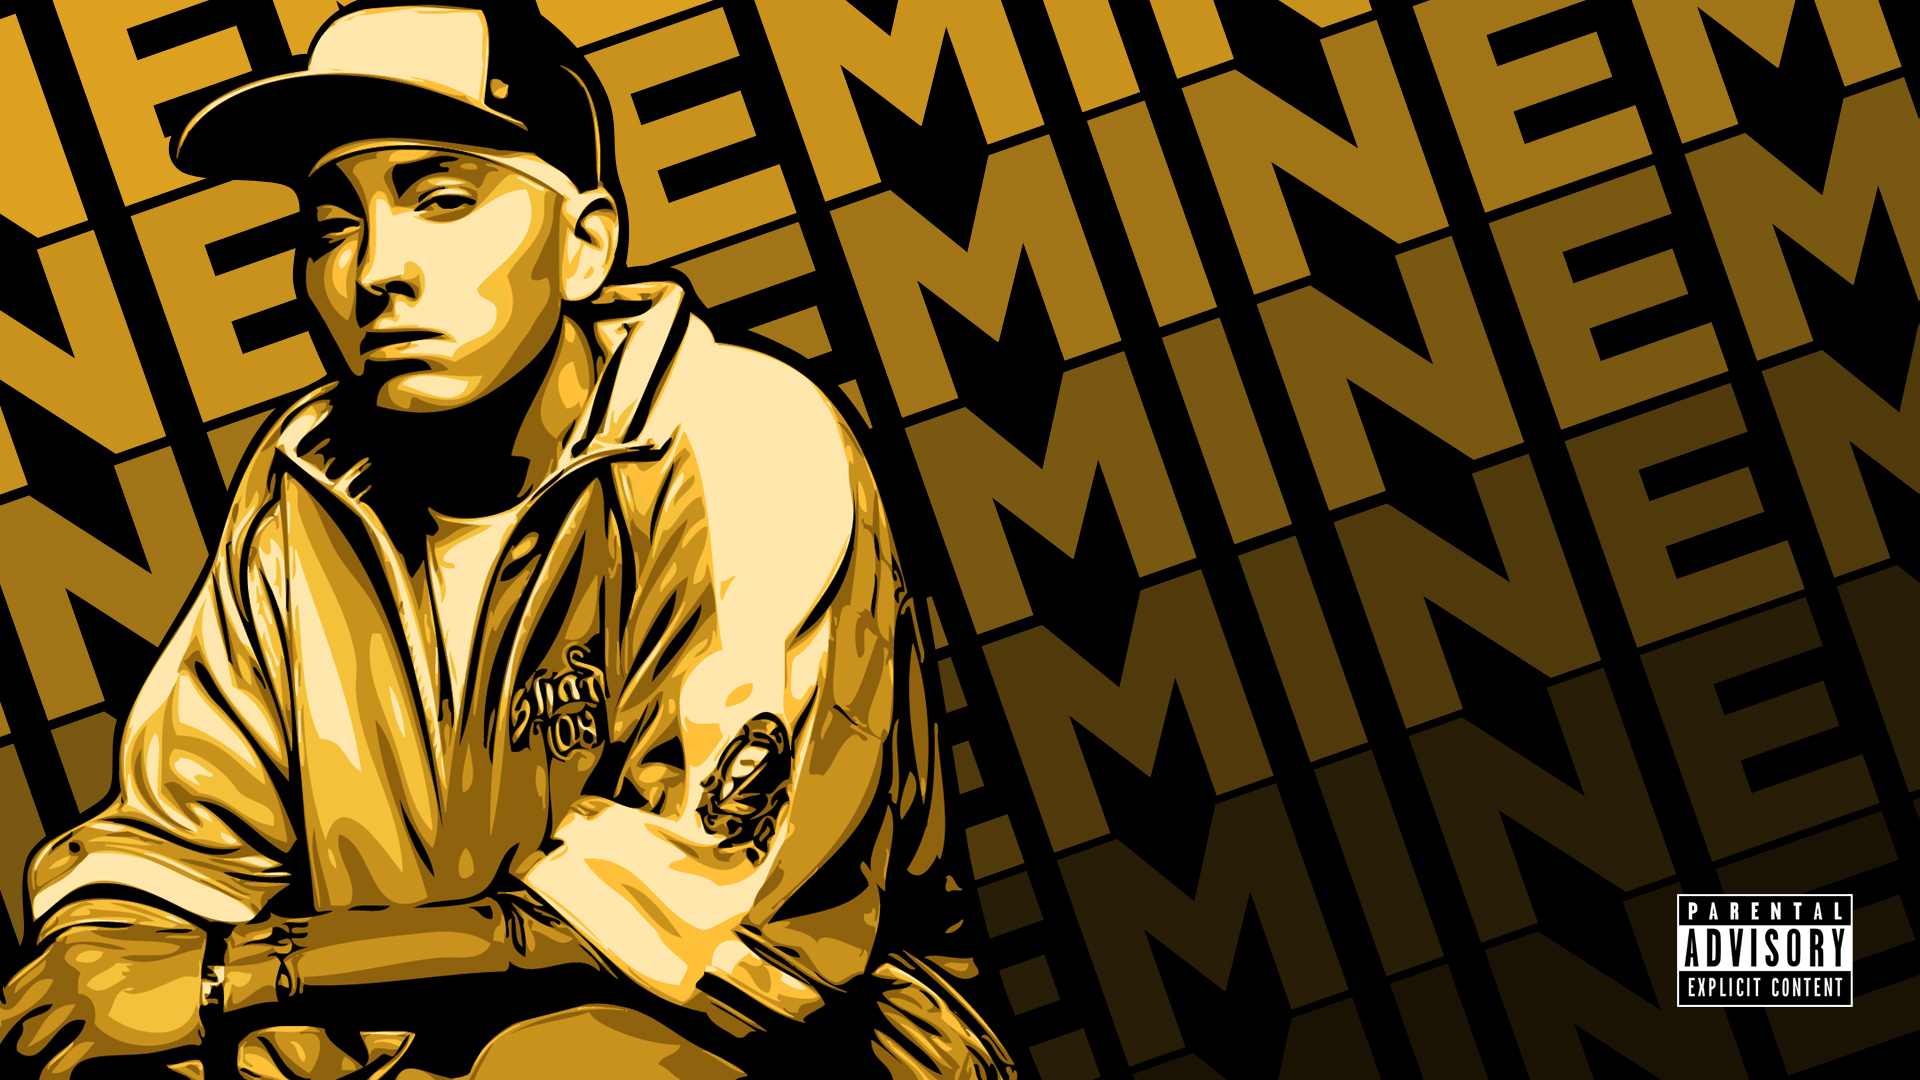 Eminem Hd Wallpapers Inn